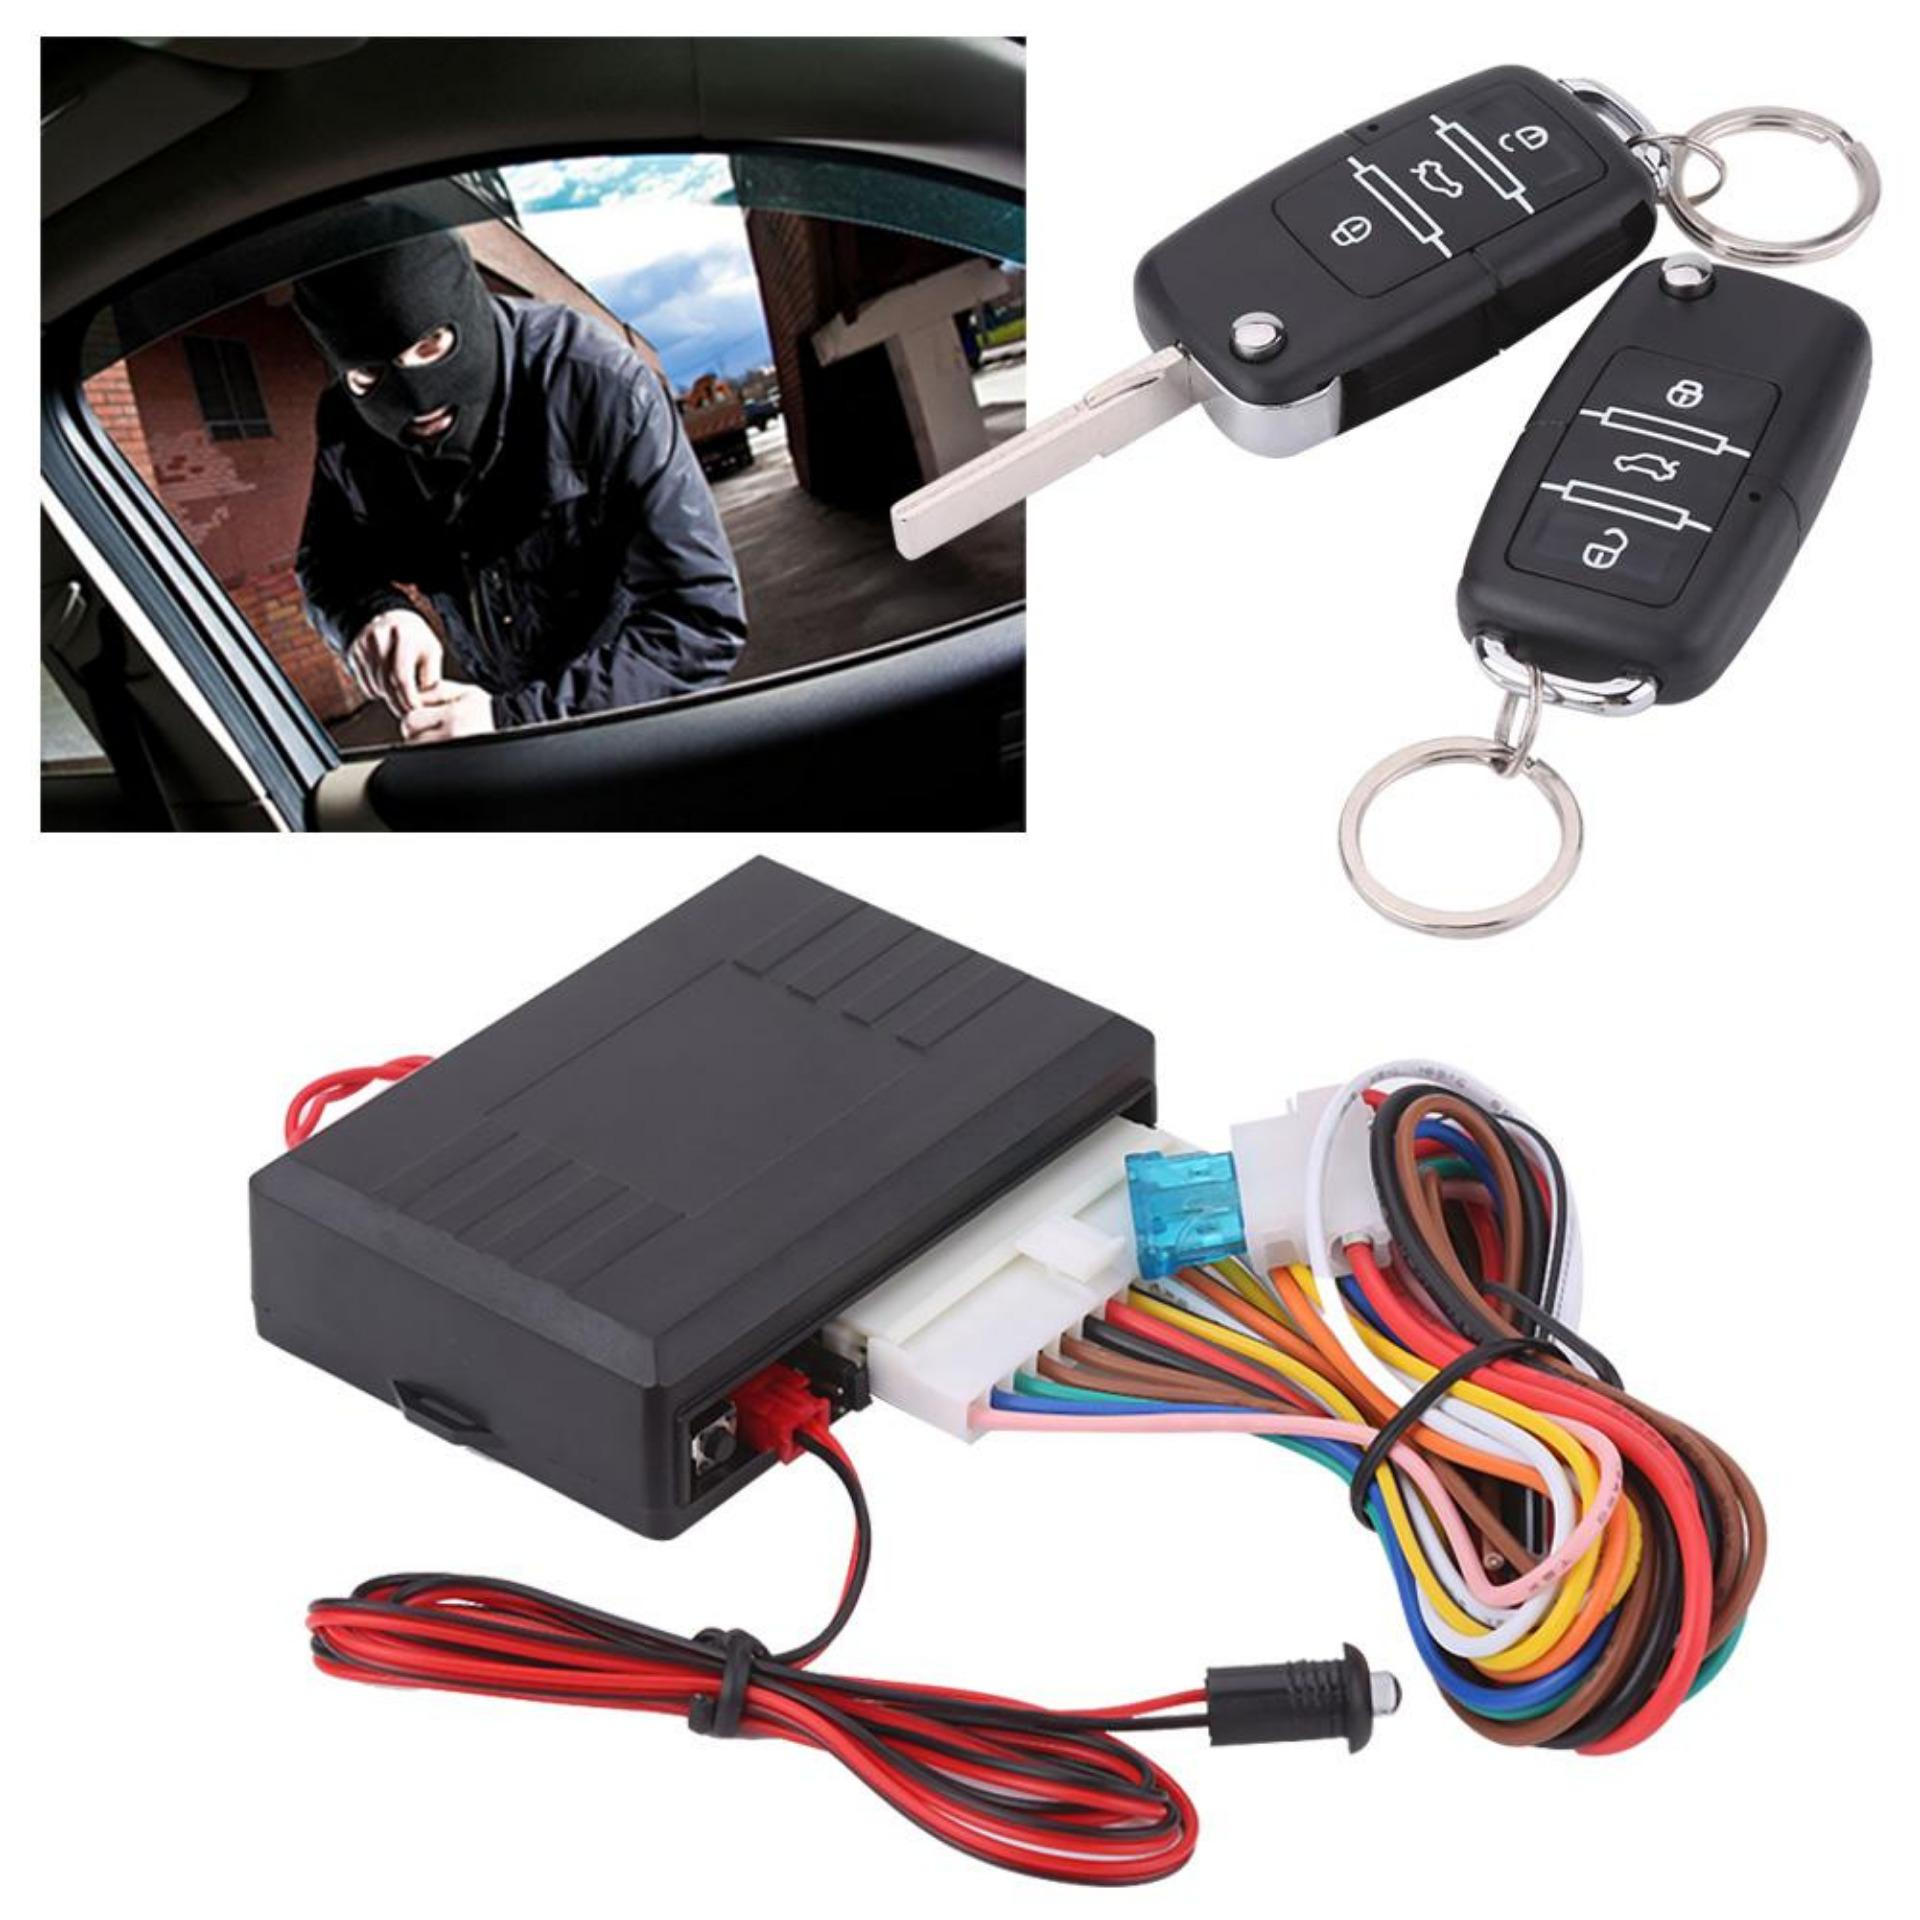 Alarm System For Sale Car Accessories Online Brands How To Install On Universal Door Lock Locking Keyless Entry Remote Central Control Kit Intl